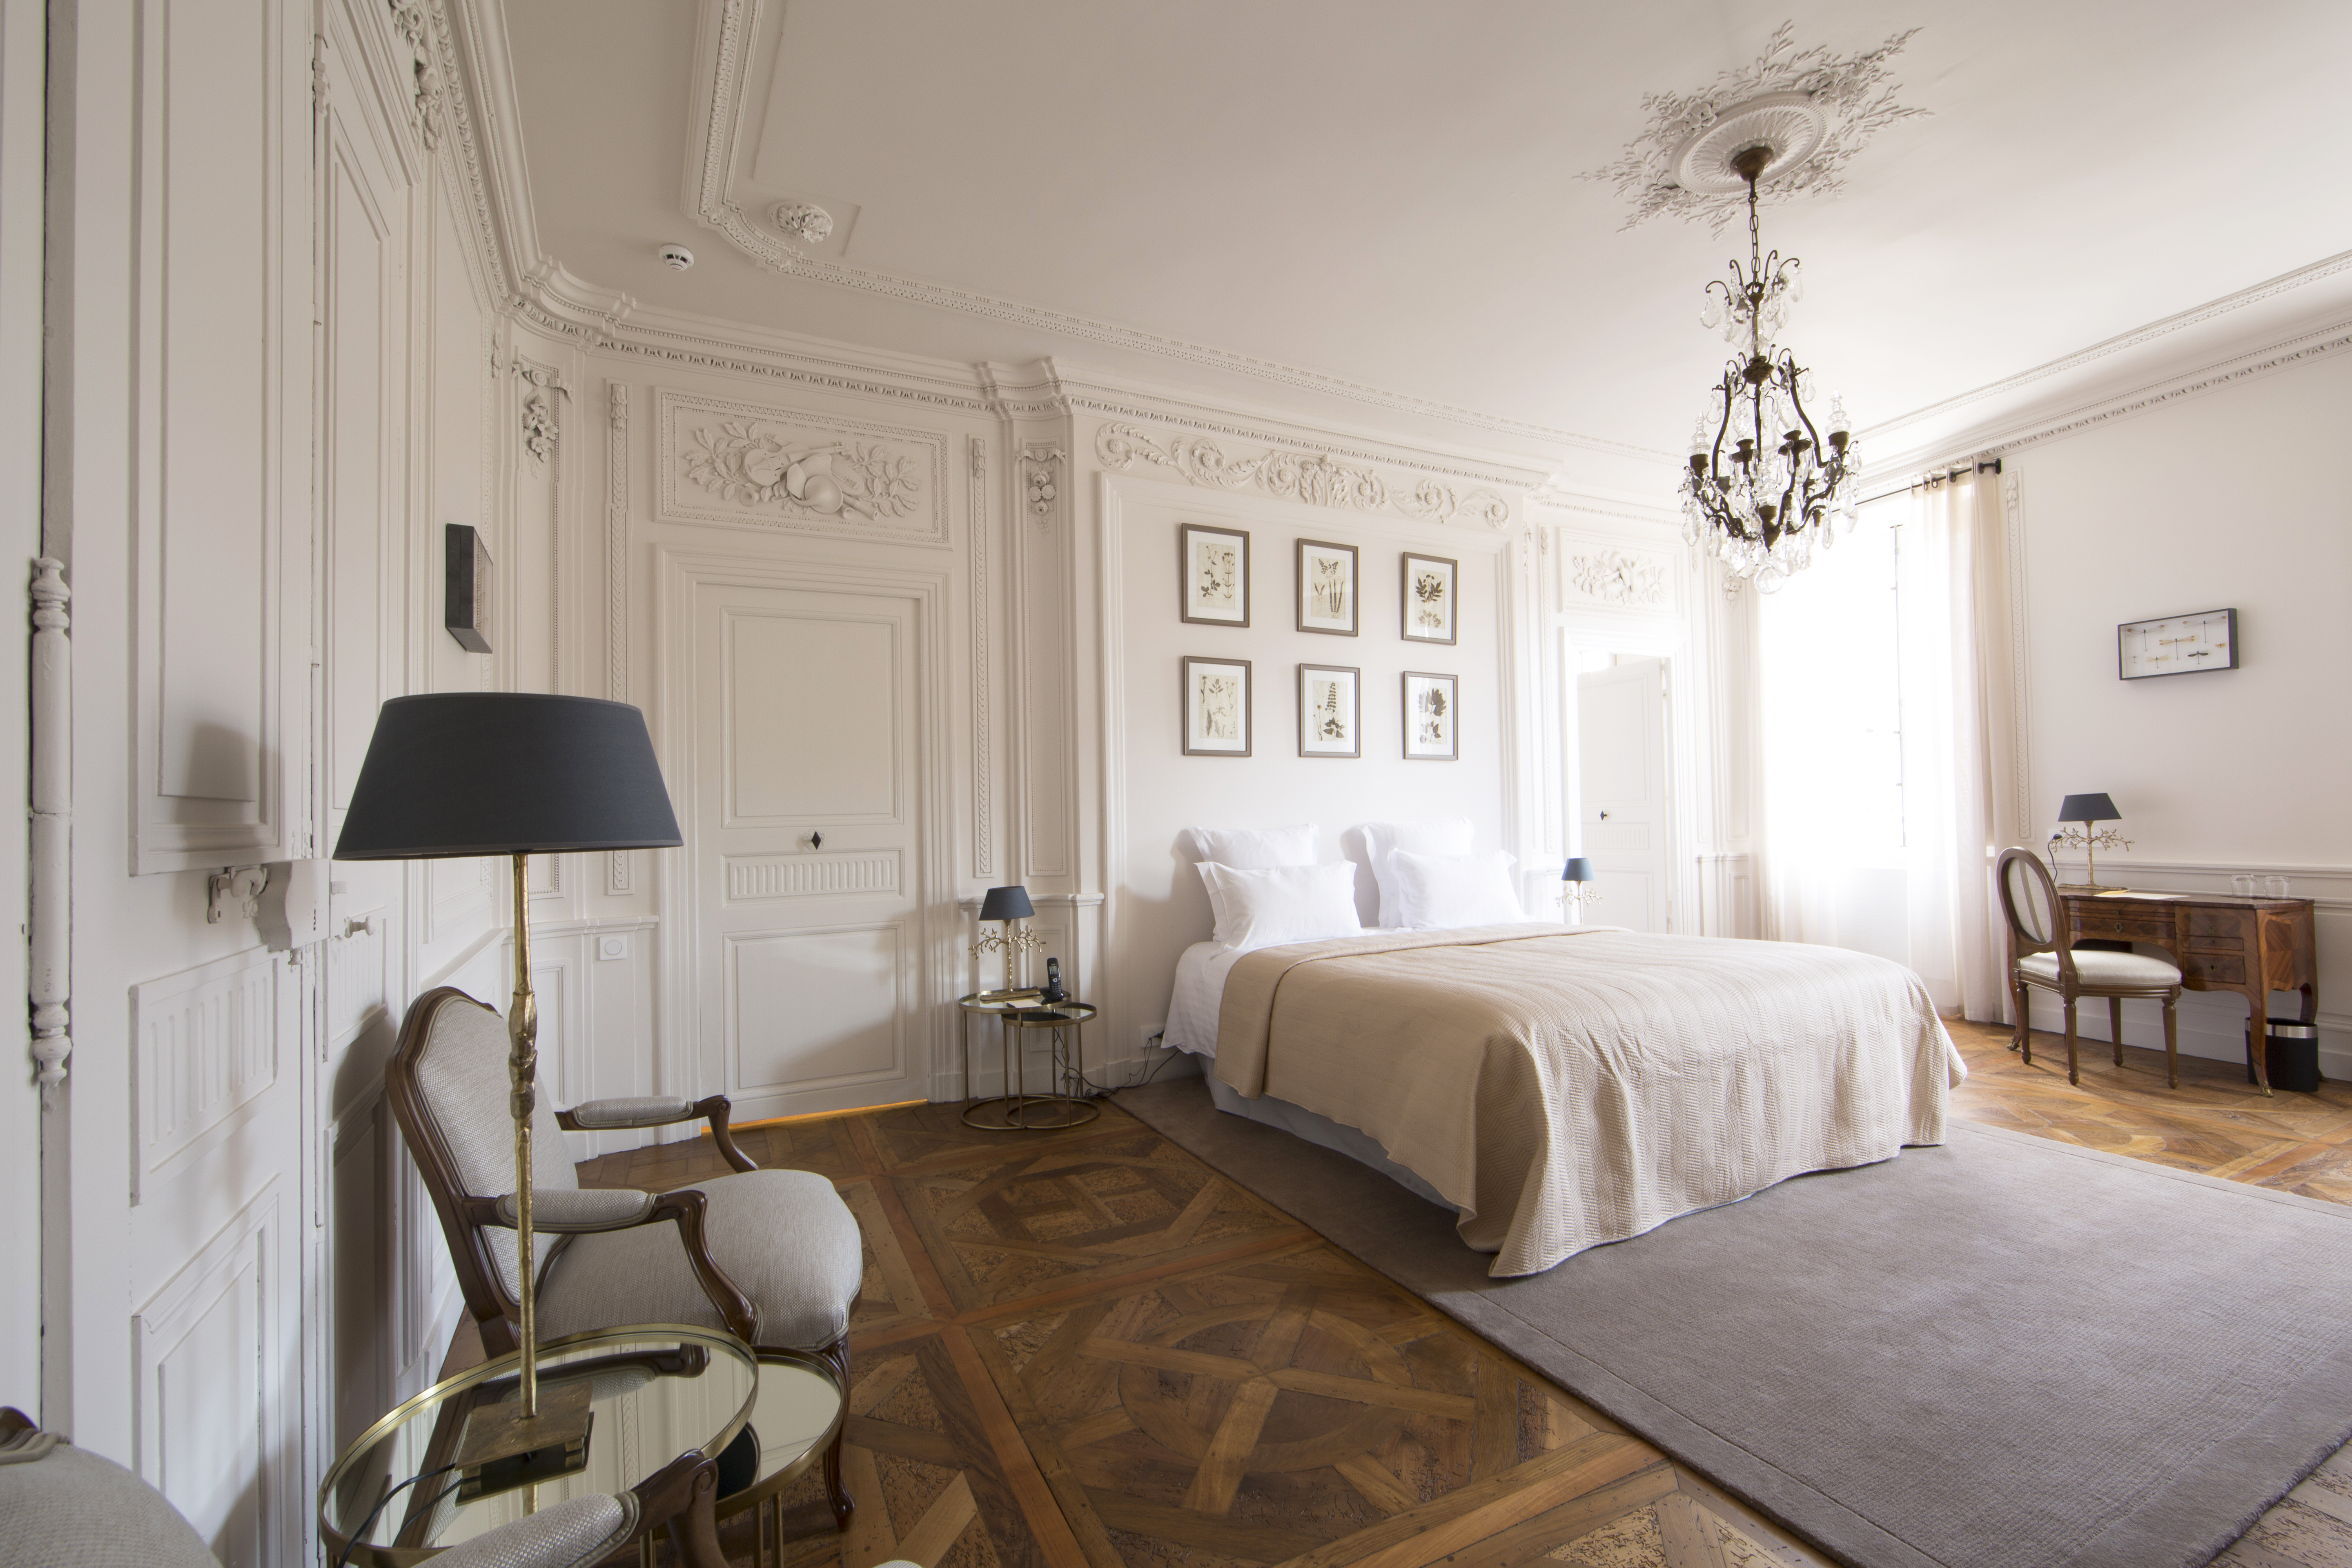 Hotel de la villeon a newly opened boutique hotel in the for Boutique hotels france